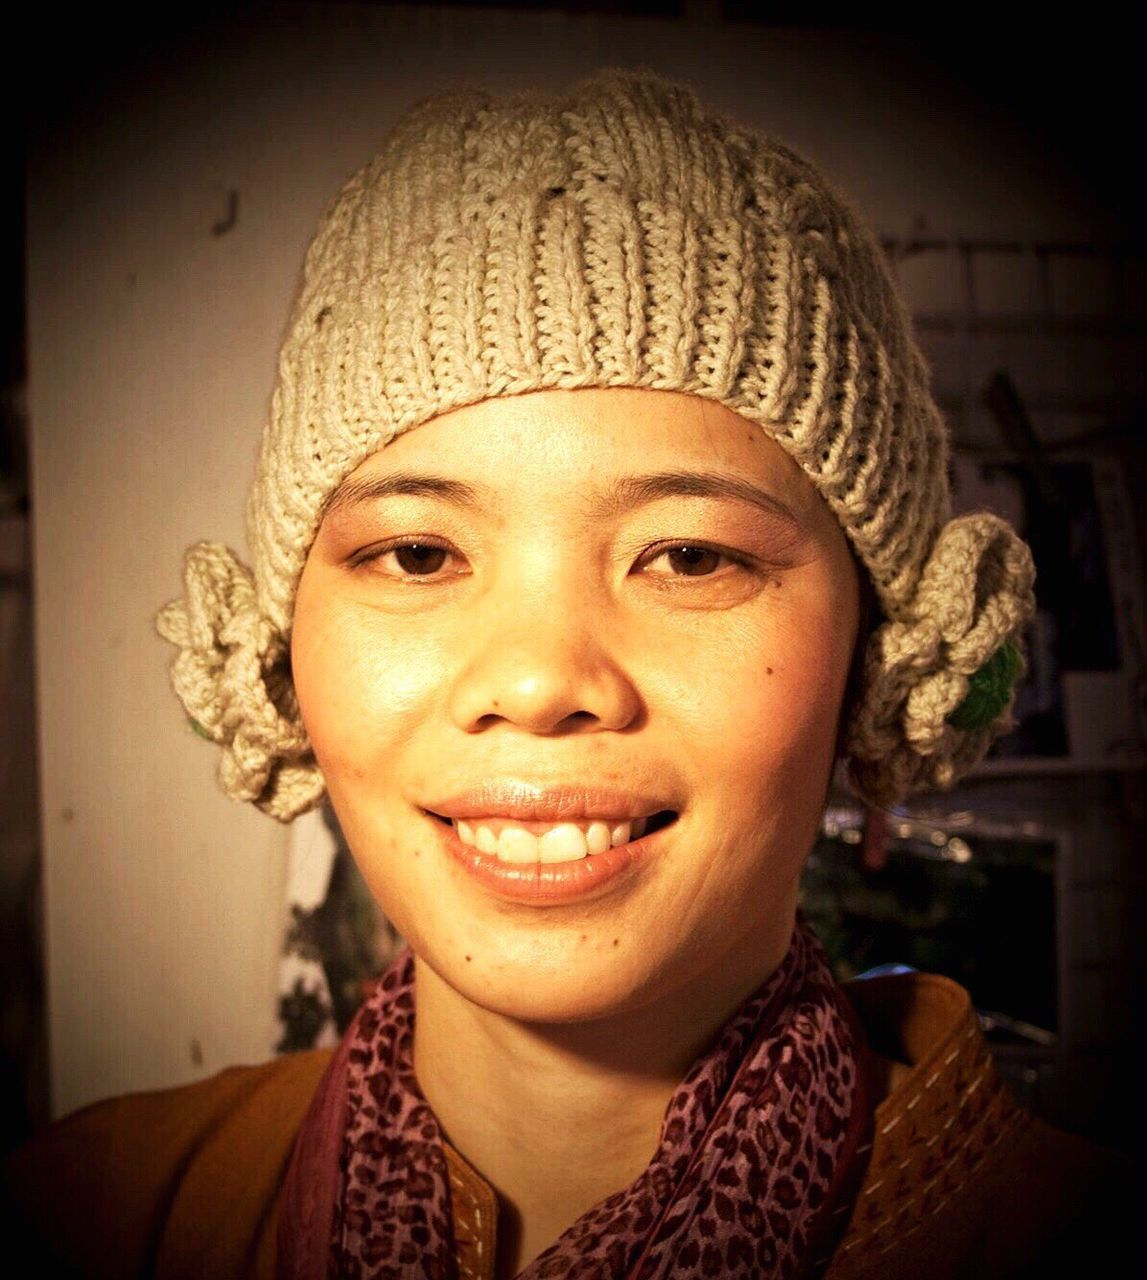 looking at camera, portrait, smiling, real people, front view, headshot, one person, knit hat, happiness, close-up, young adult, young women, indoors, human face, cheerful, day, people